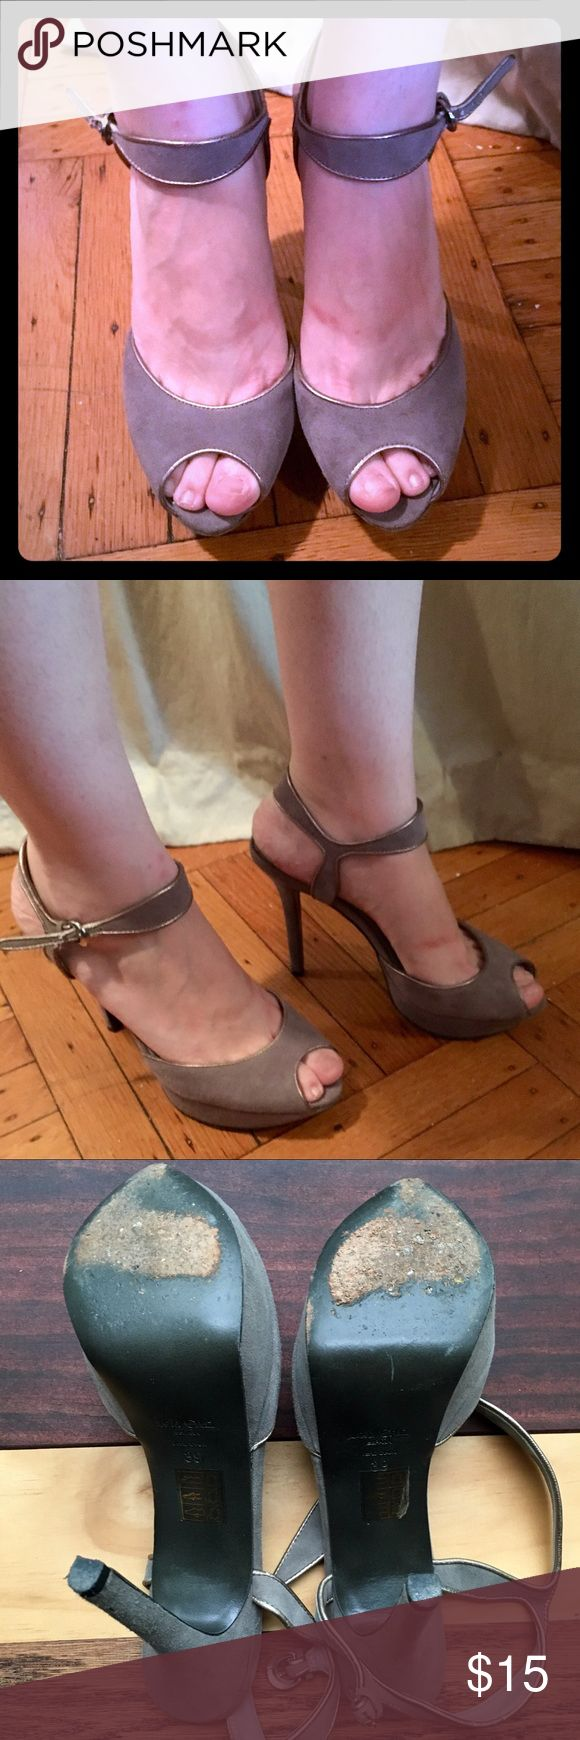 GONE 7/19 Lola Cruz Grey Suede Heels Perfect for summer weddings! The leather upper is in amazing condition - the soles are scuffed - see photos. Heels are approximately 5 inches high! Love these shoes but I've been told by my doc to stop wearing heels :( Hurry because I'm donating everything this Tuesday. Lola Cruz Shoes Heels